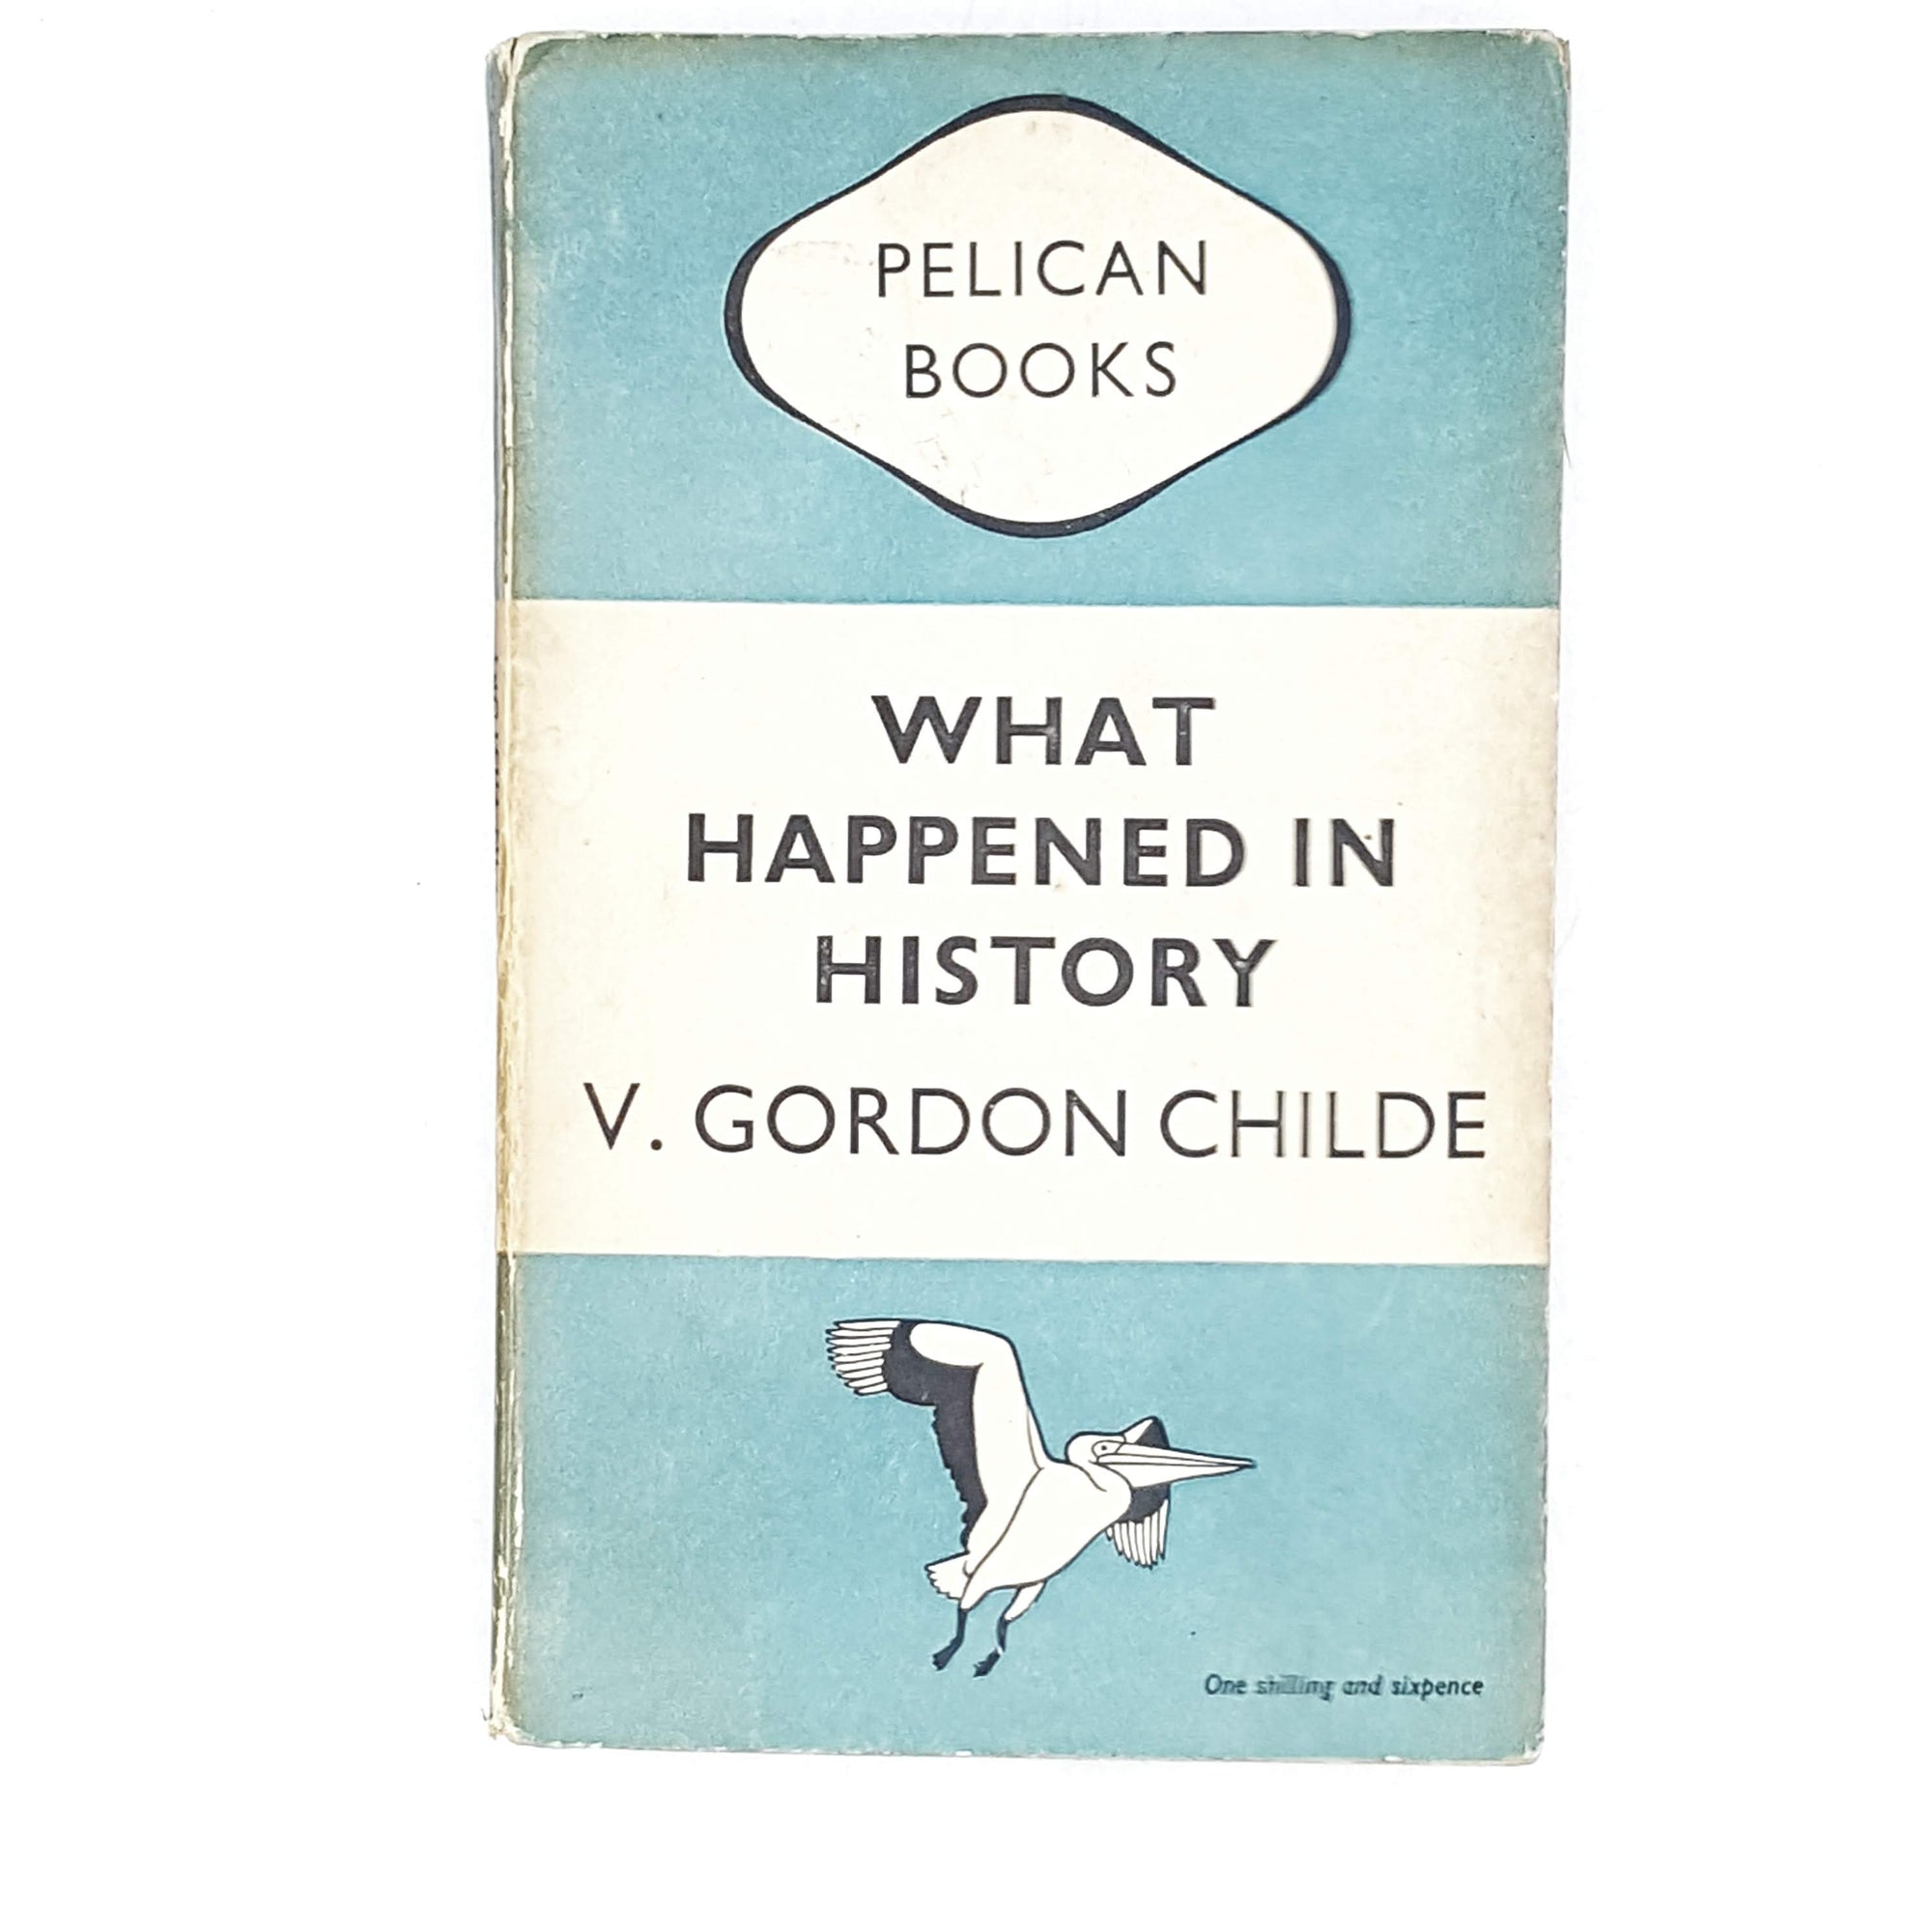 vintage-pelican-what-happened-in-history-by-v-gordon-childe-1948-antique-pale-blue-country-house-library